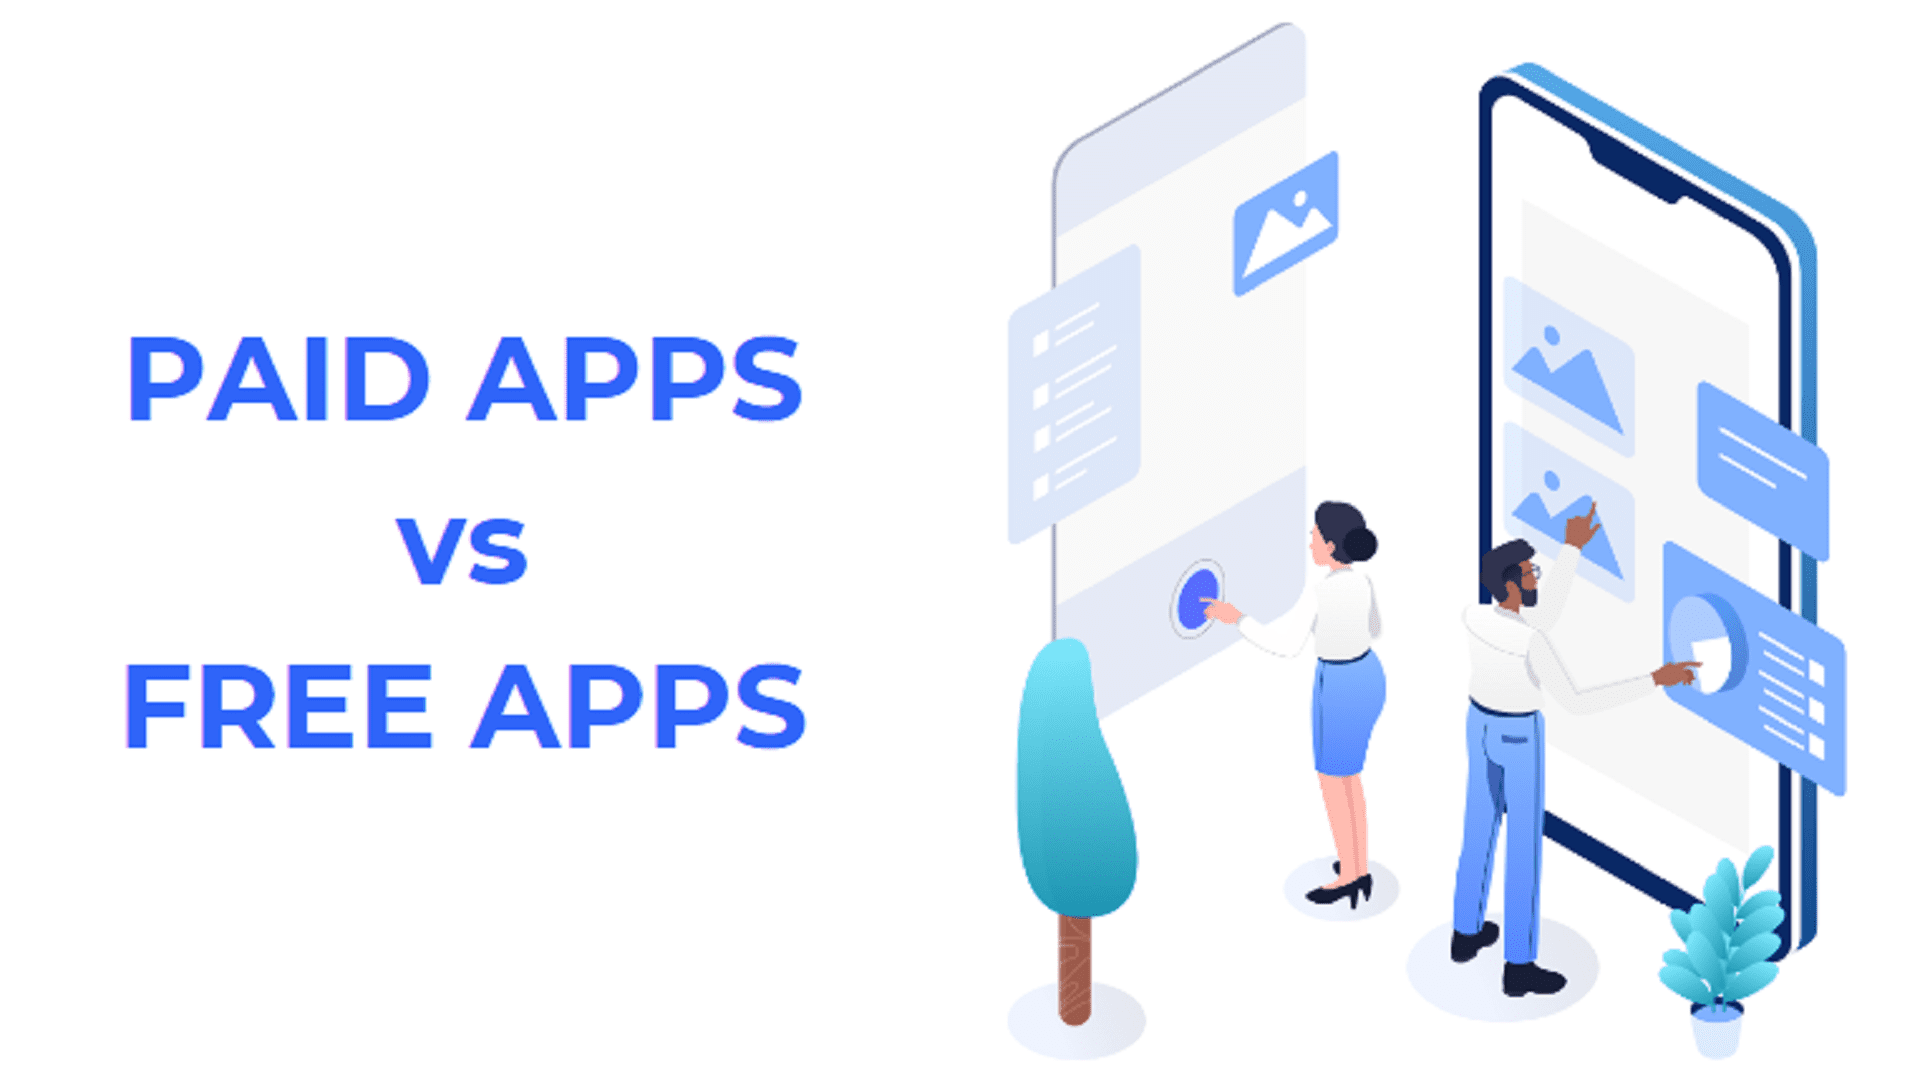 Paid apps vs free apps